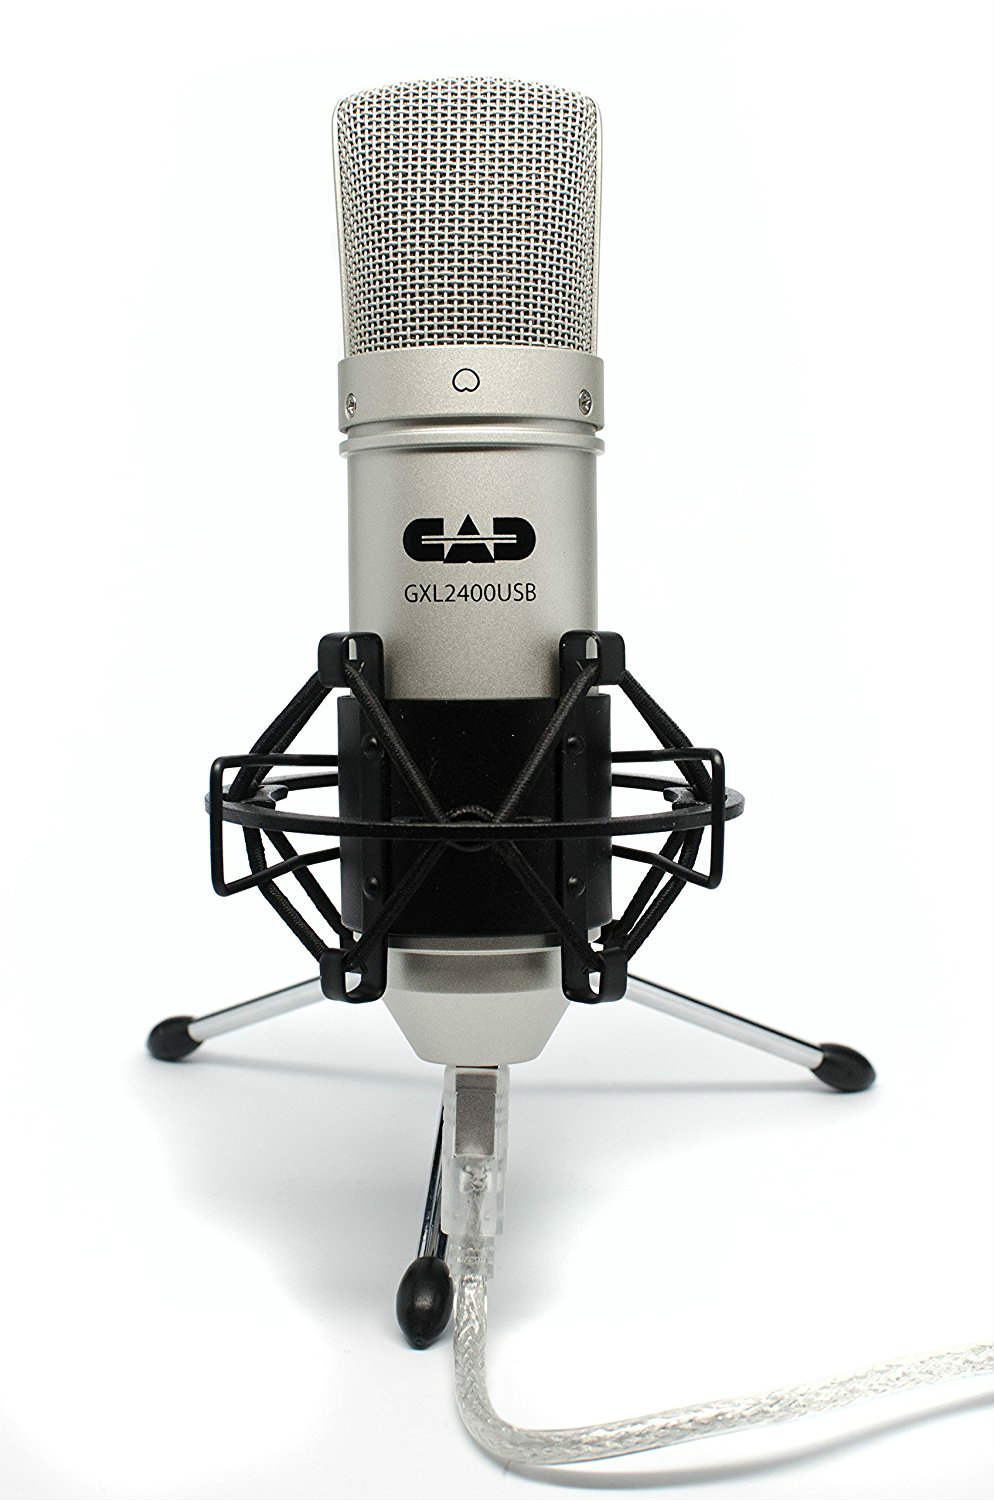 The CAD GXL2400 USB Microphone